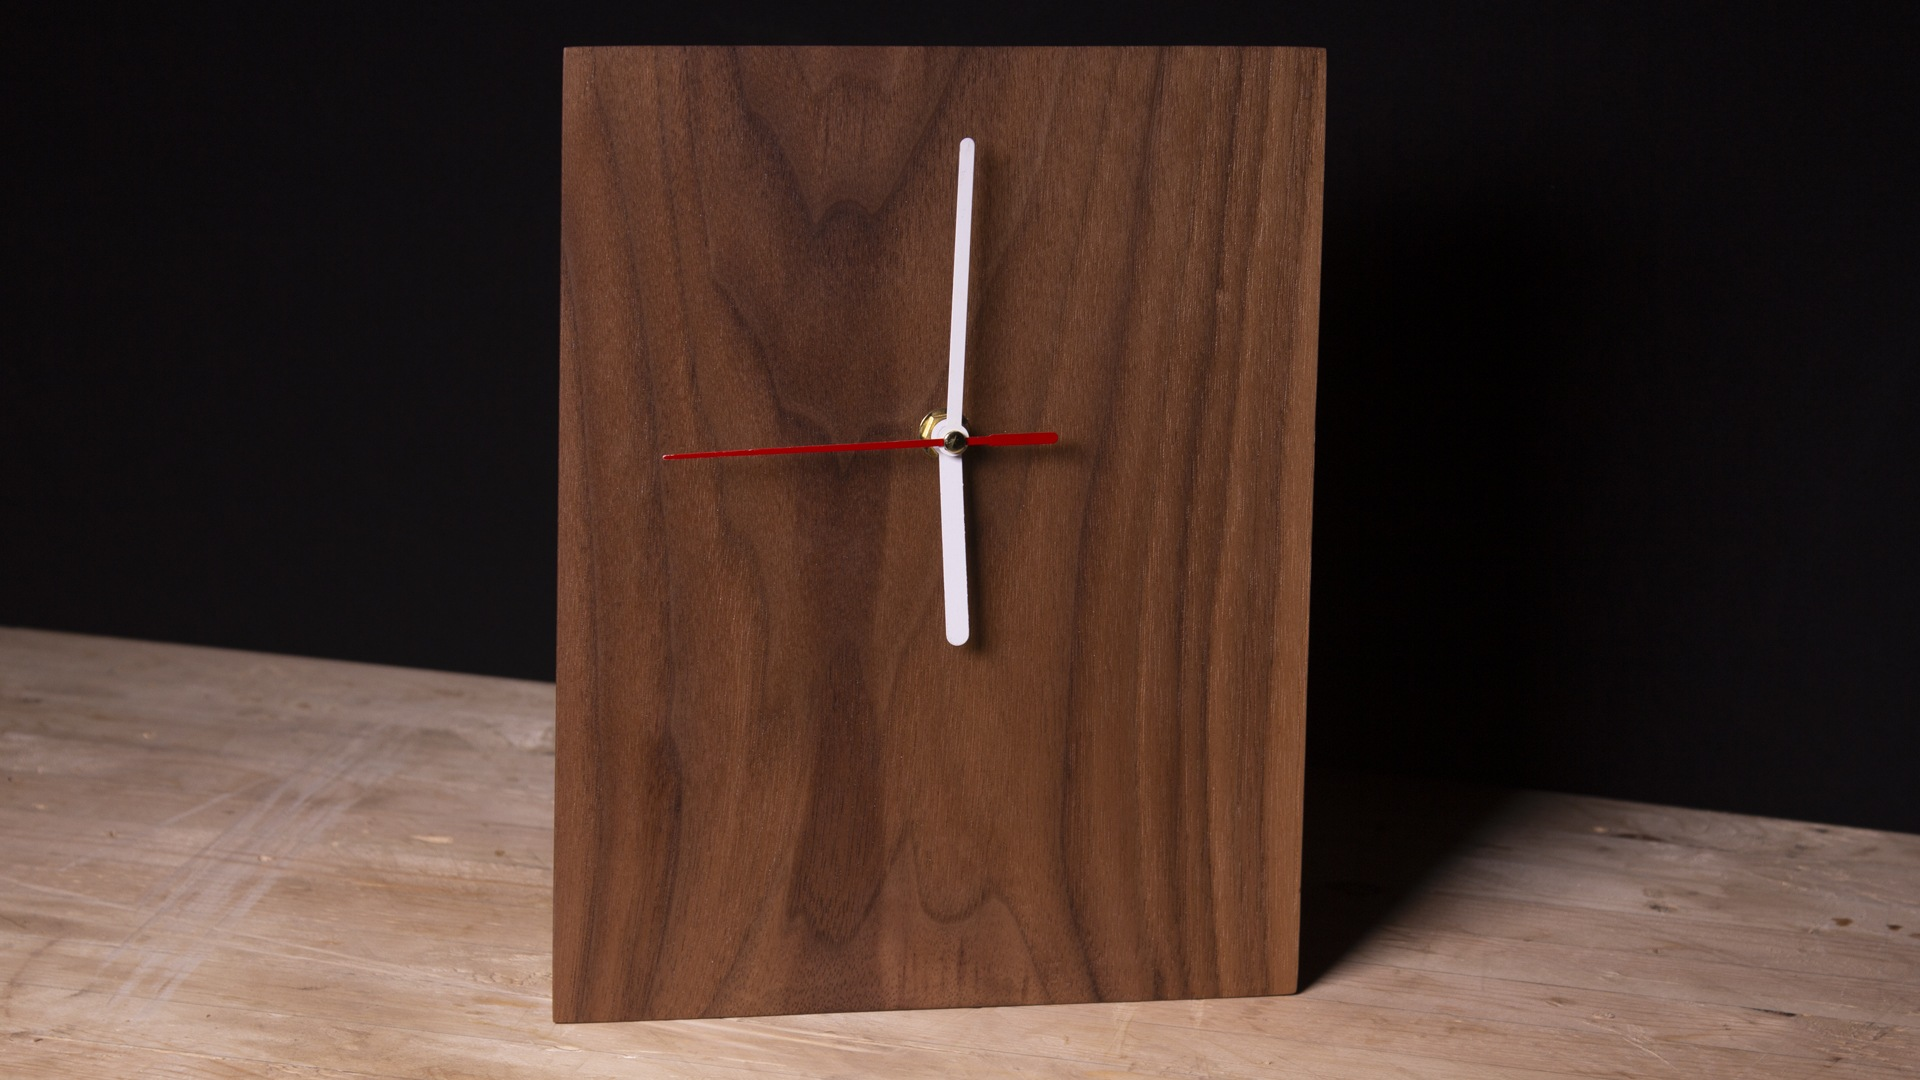 How to Make a Simple Clock from Scrap Wood